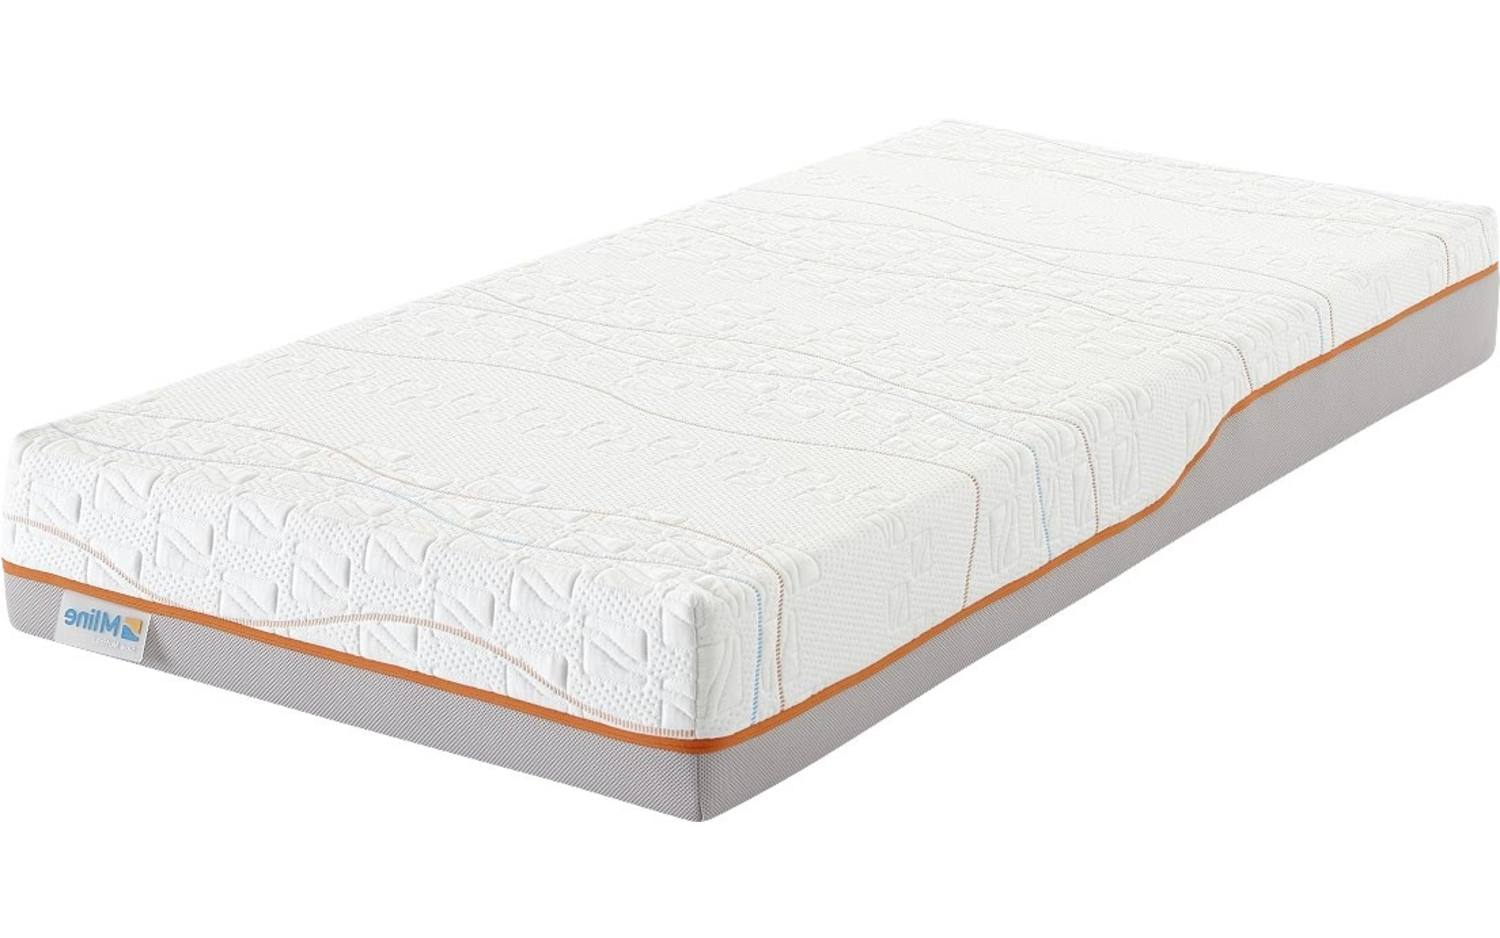 Matras slowmotion 3 ism wit onbekend - 8171924-01